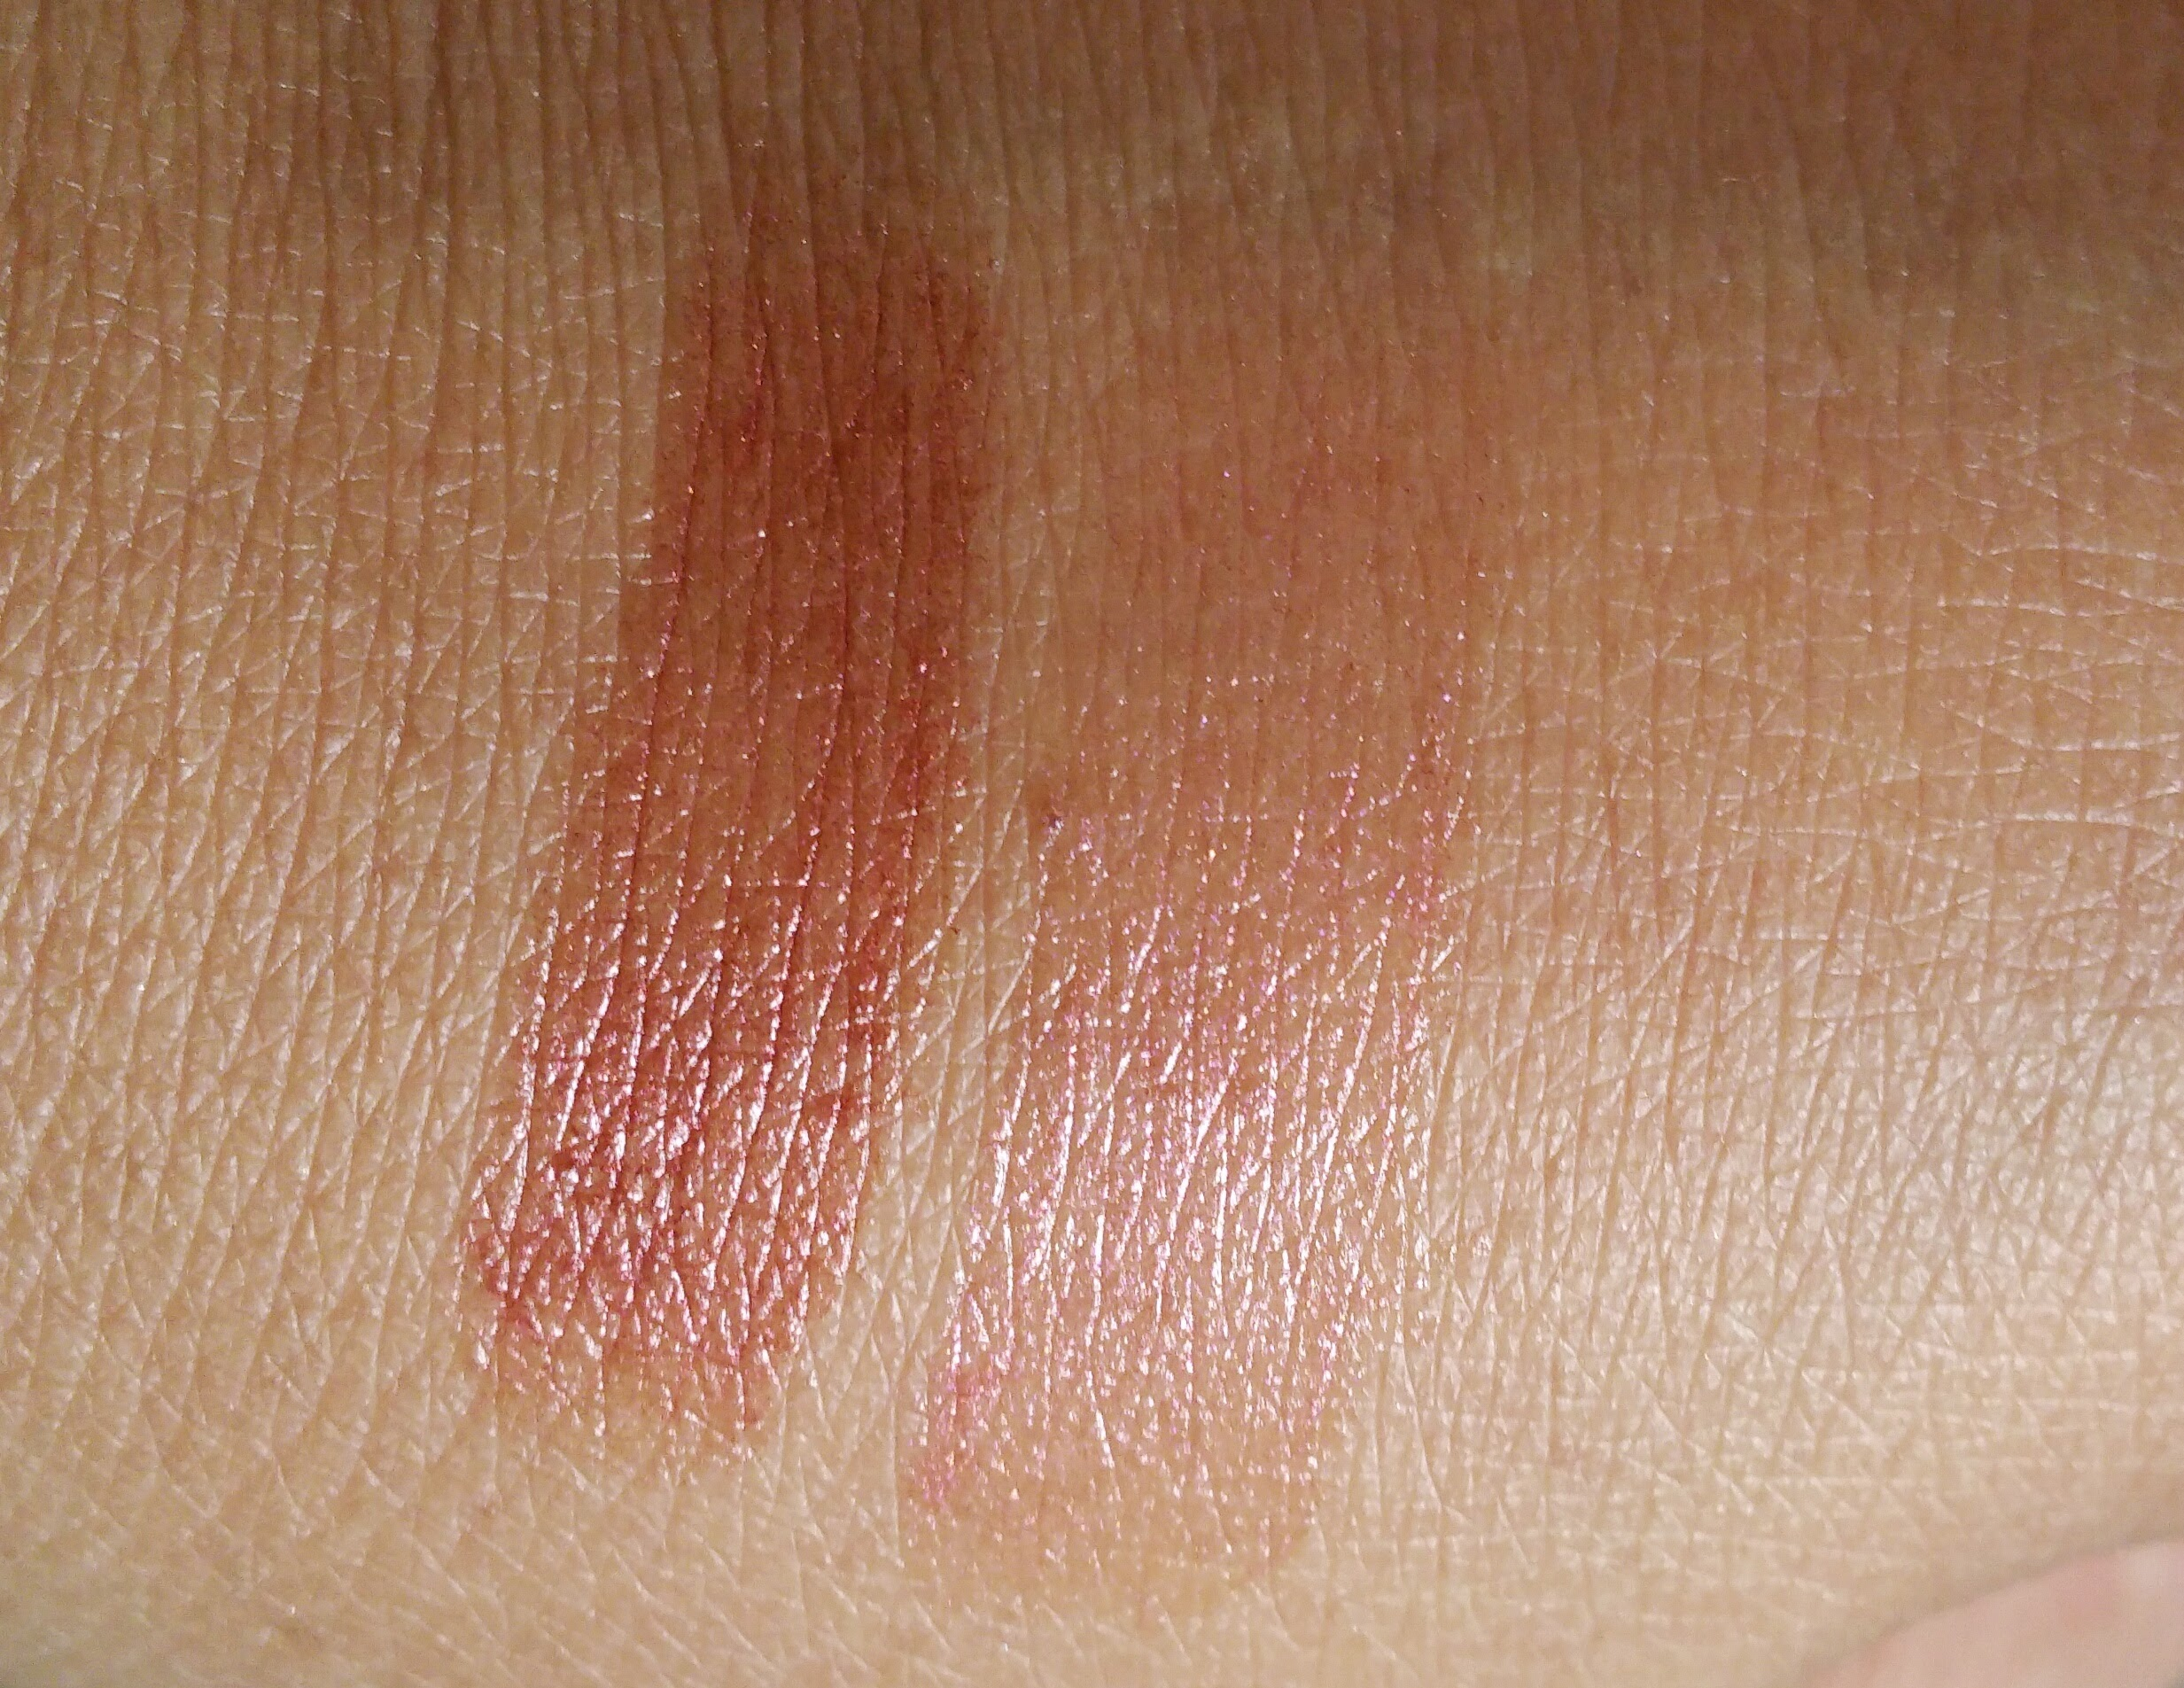 deVine beauty, deVine, lips, lip balm, reservatrol, review, beauty, makeup, lips, beauty review, swatches, antioxidants, anti-aging,